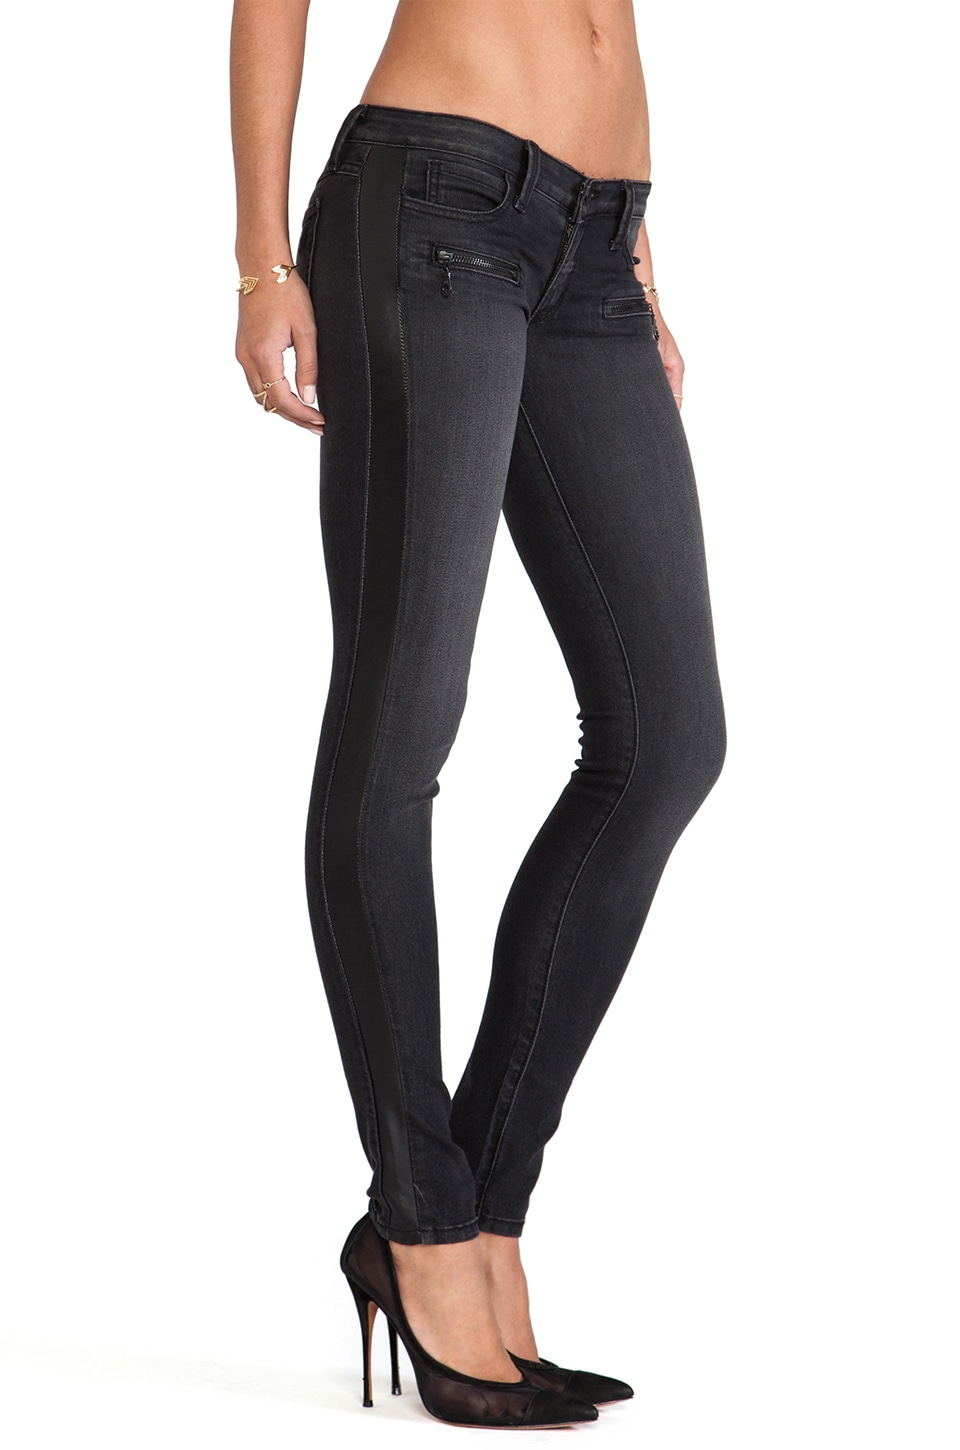 Frankie B. Jeans Guitar Hero Jeggings in Onyx